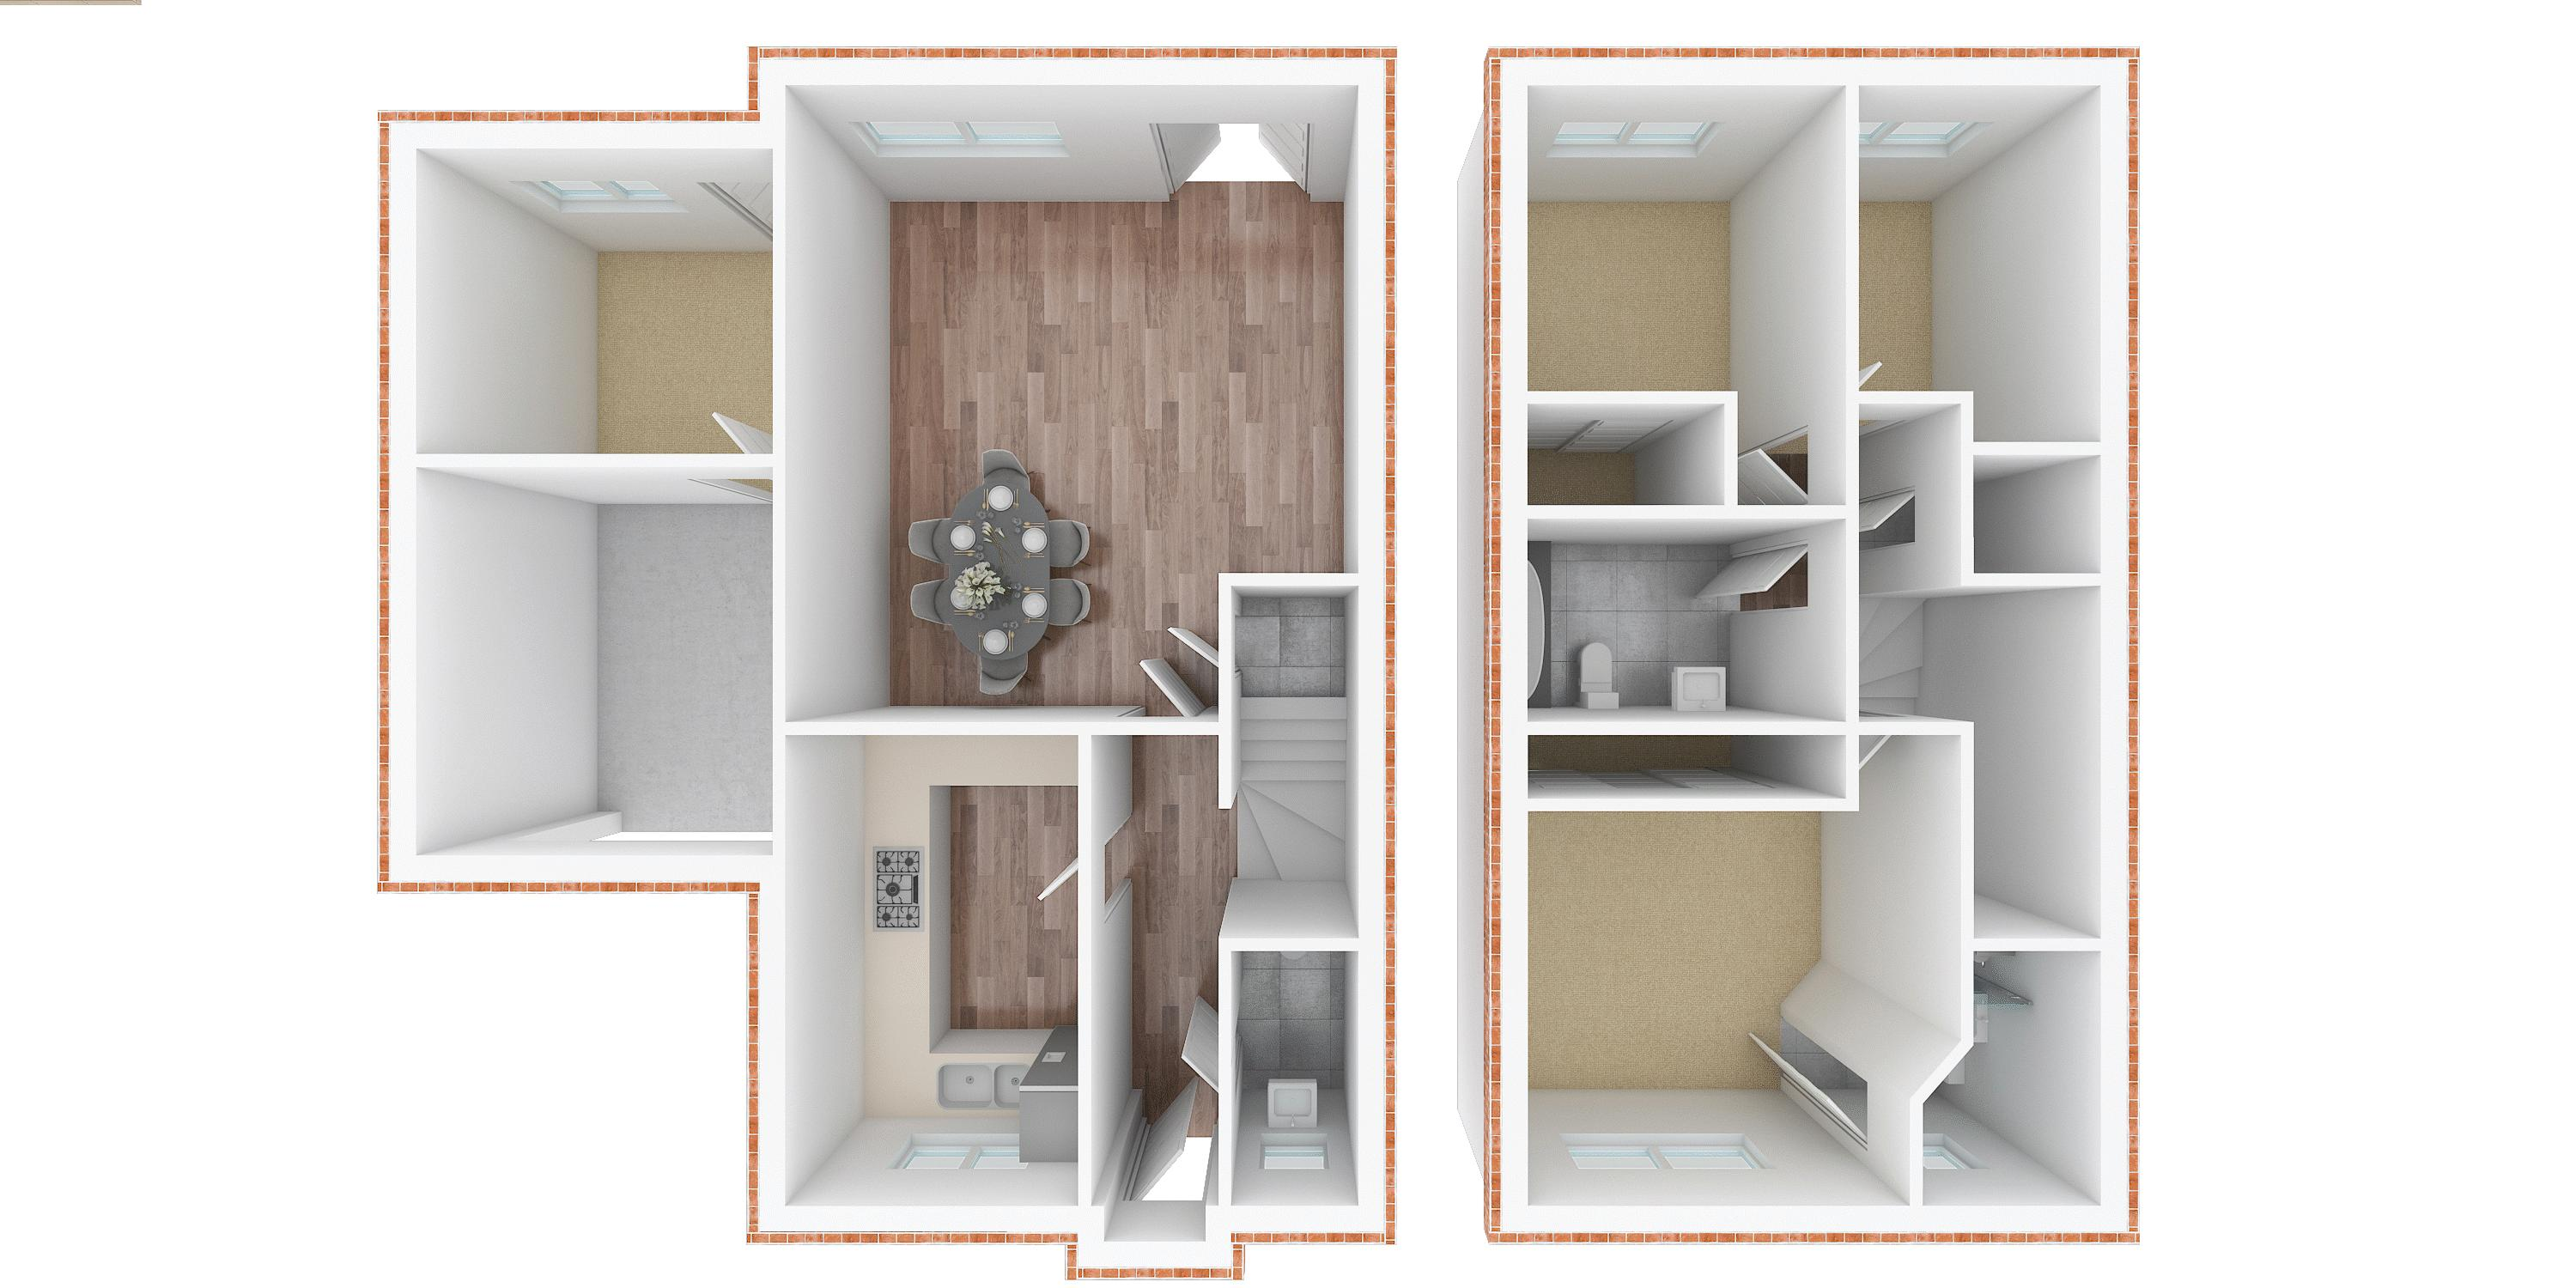 3 bed house for sale in Whitebeam Close - Property Floorplan